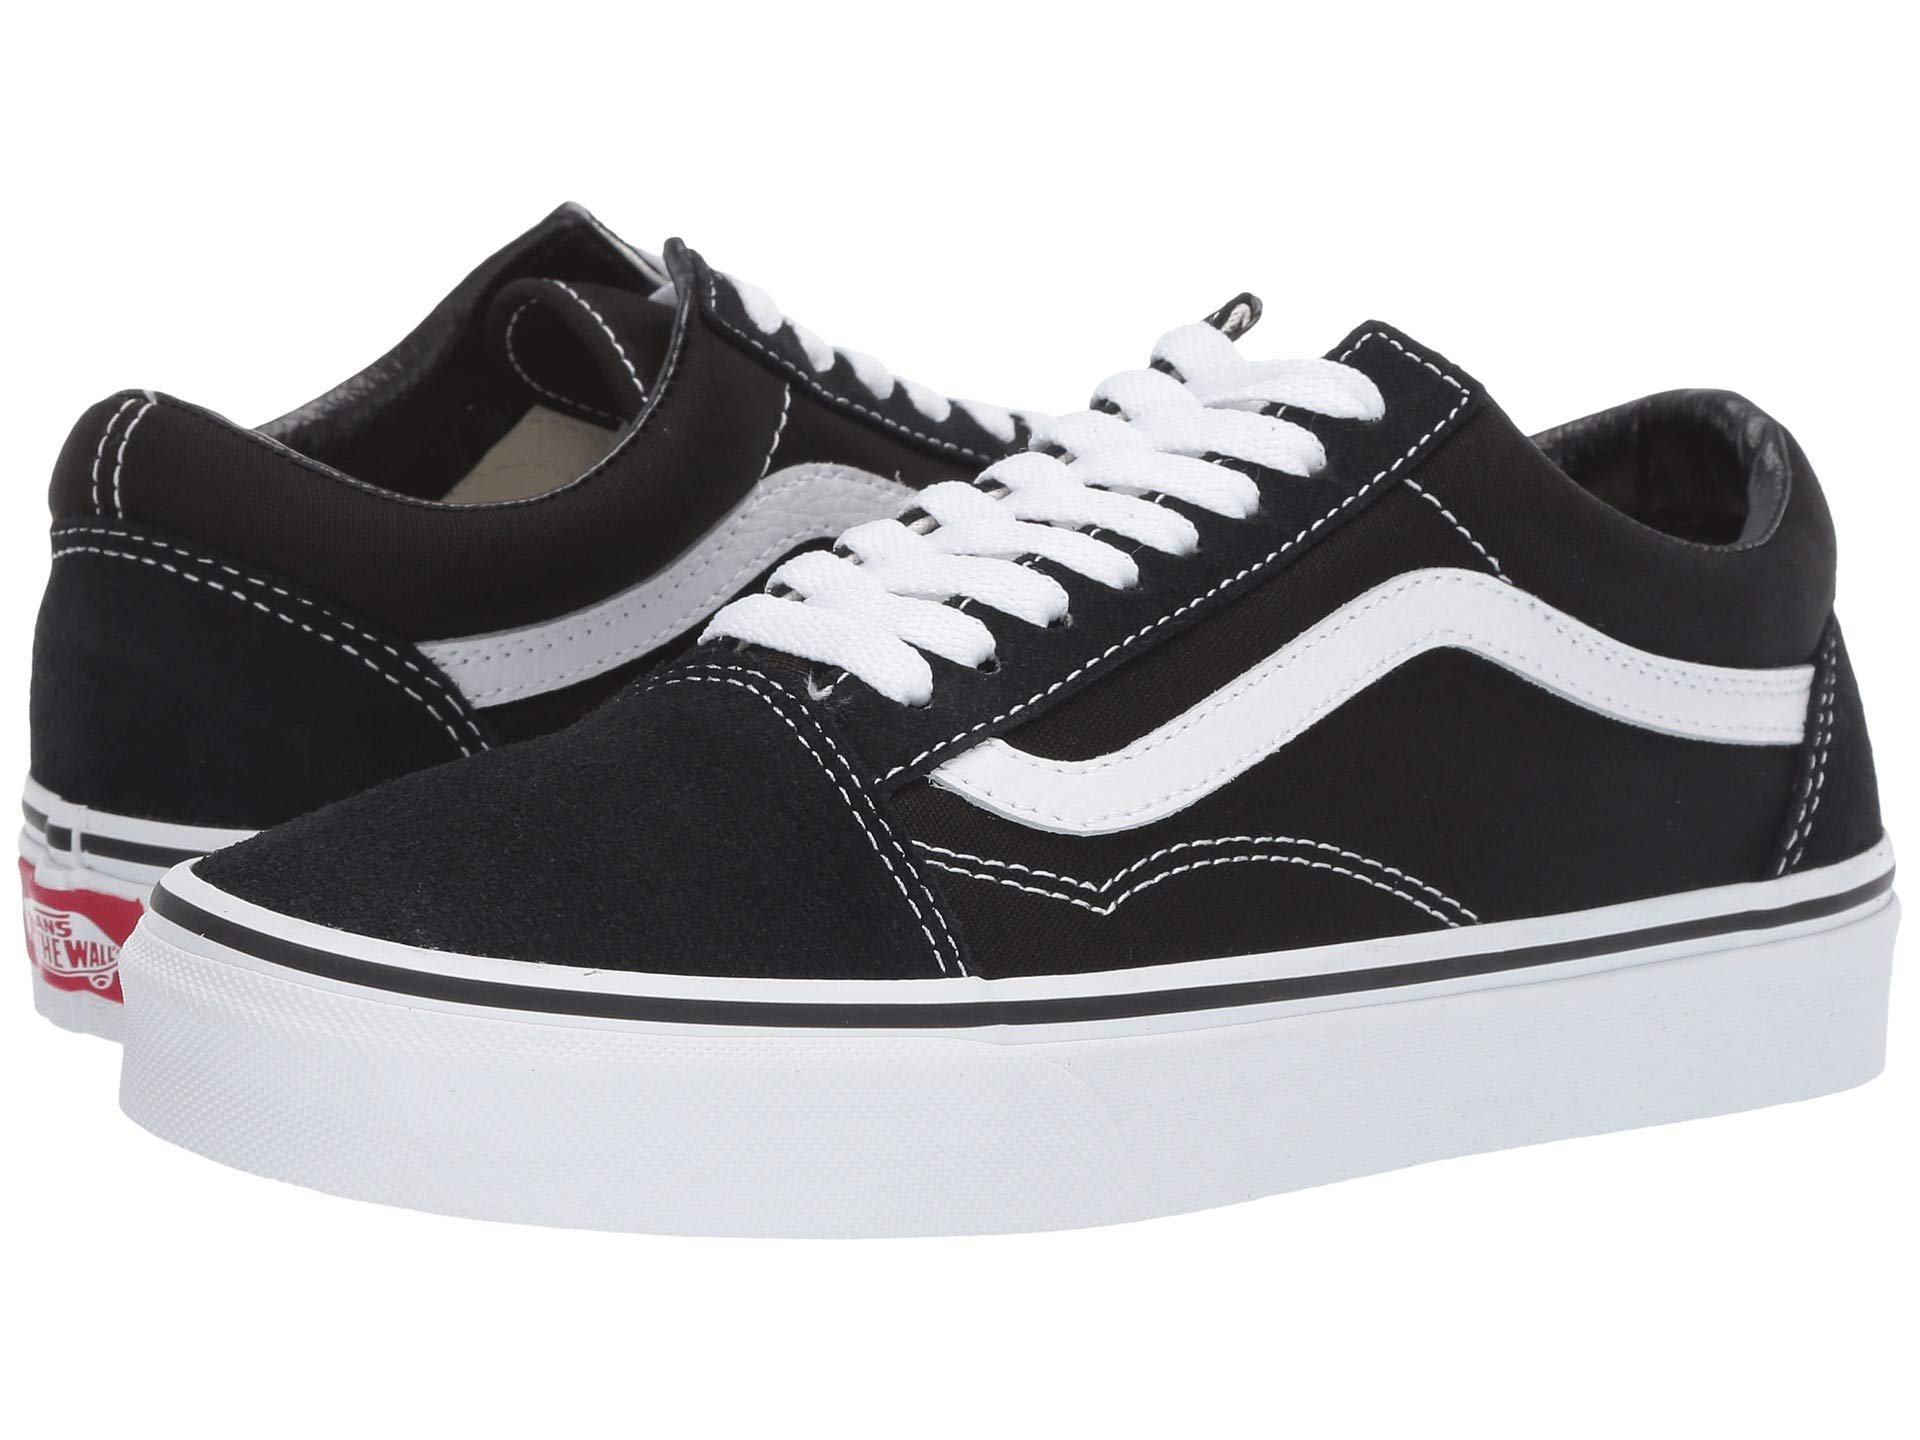 Old Skool Core Classics by Vans, available on zappos.com for $59.95 Bella Hadid Shoes Exact Product